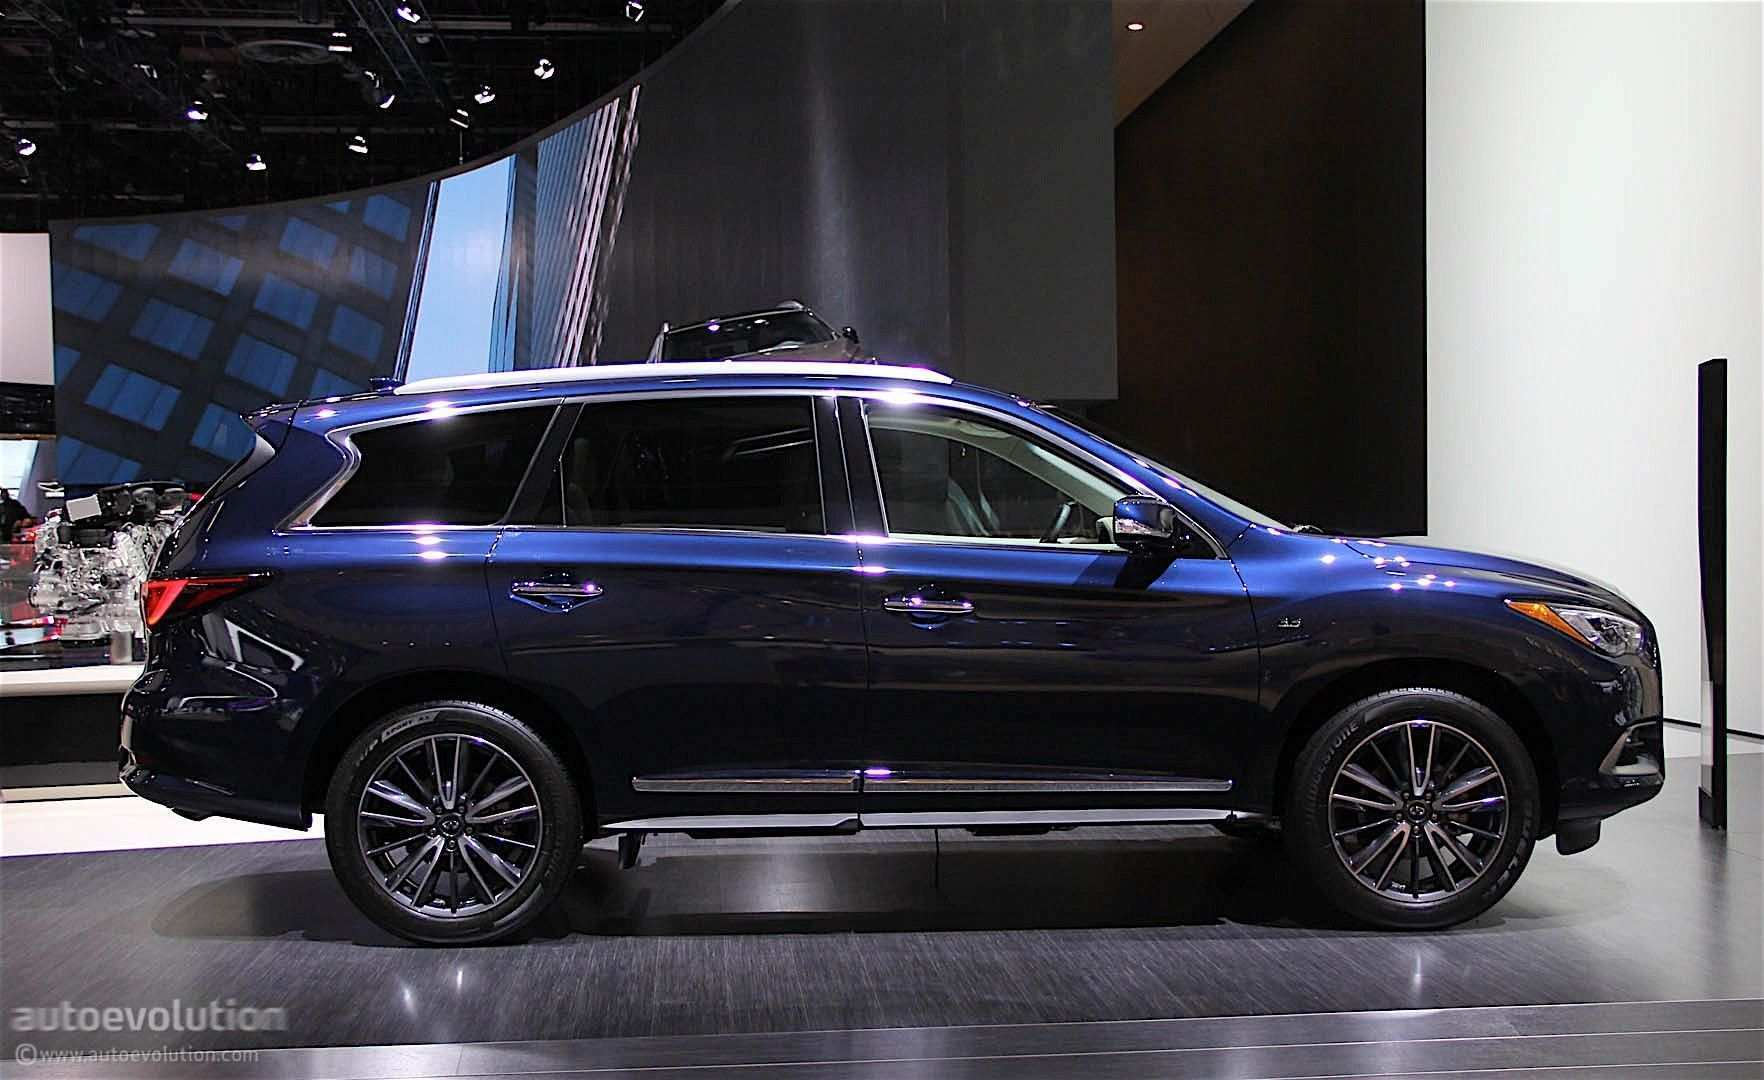 34 All New 2020 Infiniti QX60 Hybrid Style with 2020 Infiniti QX60 Hybrid